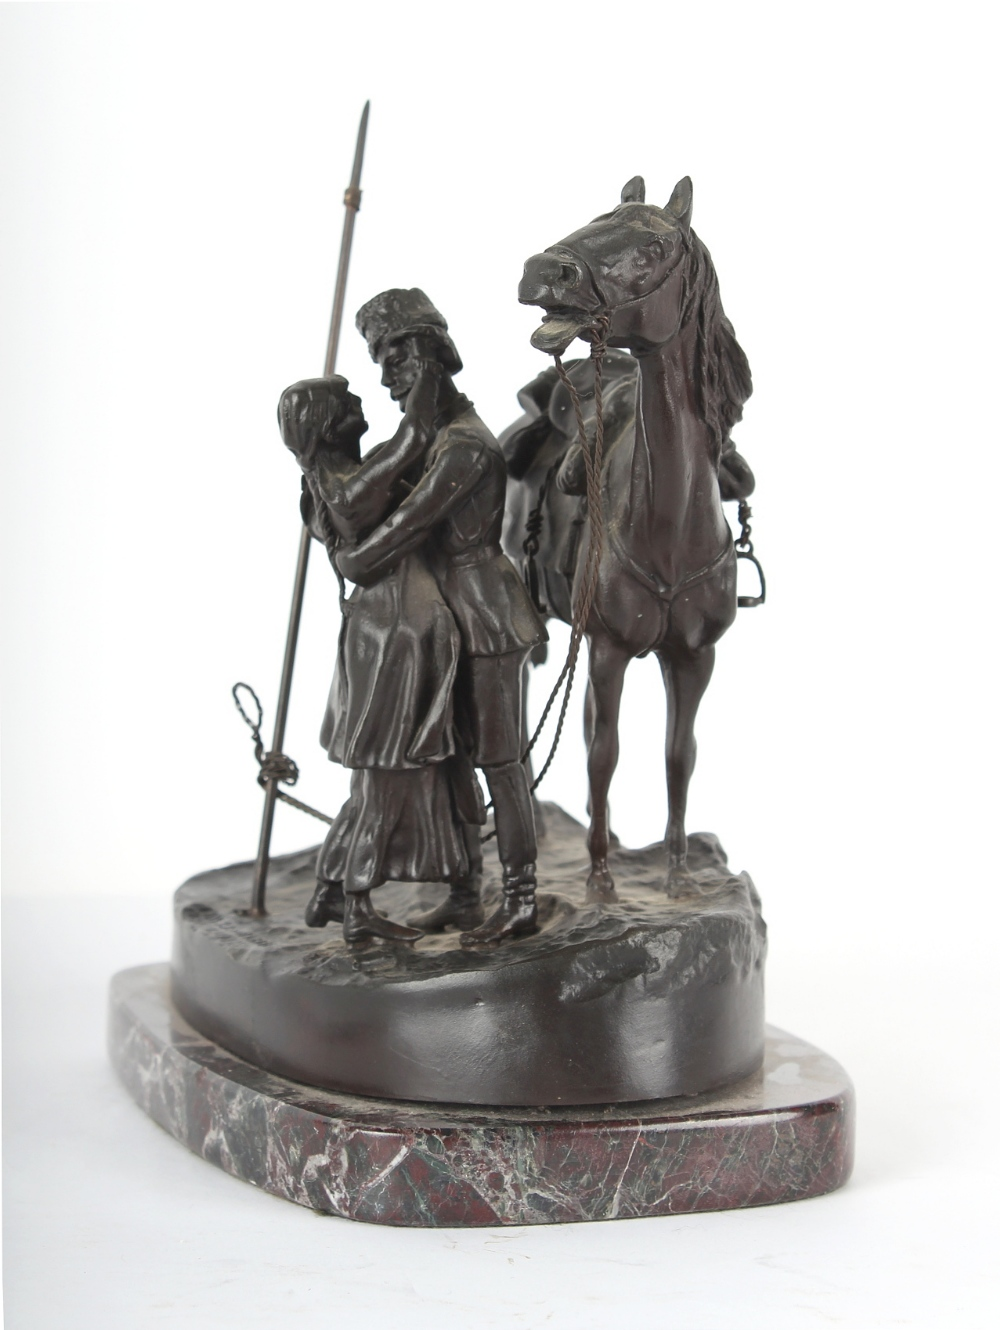 Property of a gentleman - after Vasily Grachev (1831-1905) - a late 19th century Russian patinated - Image 3 of 4